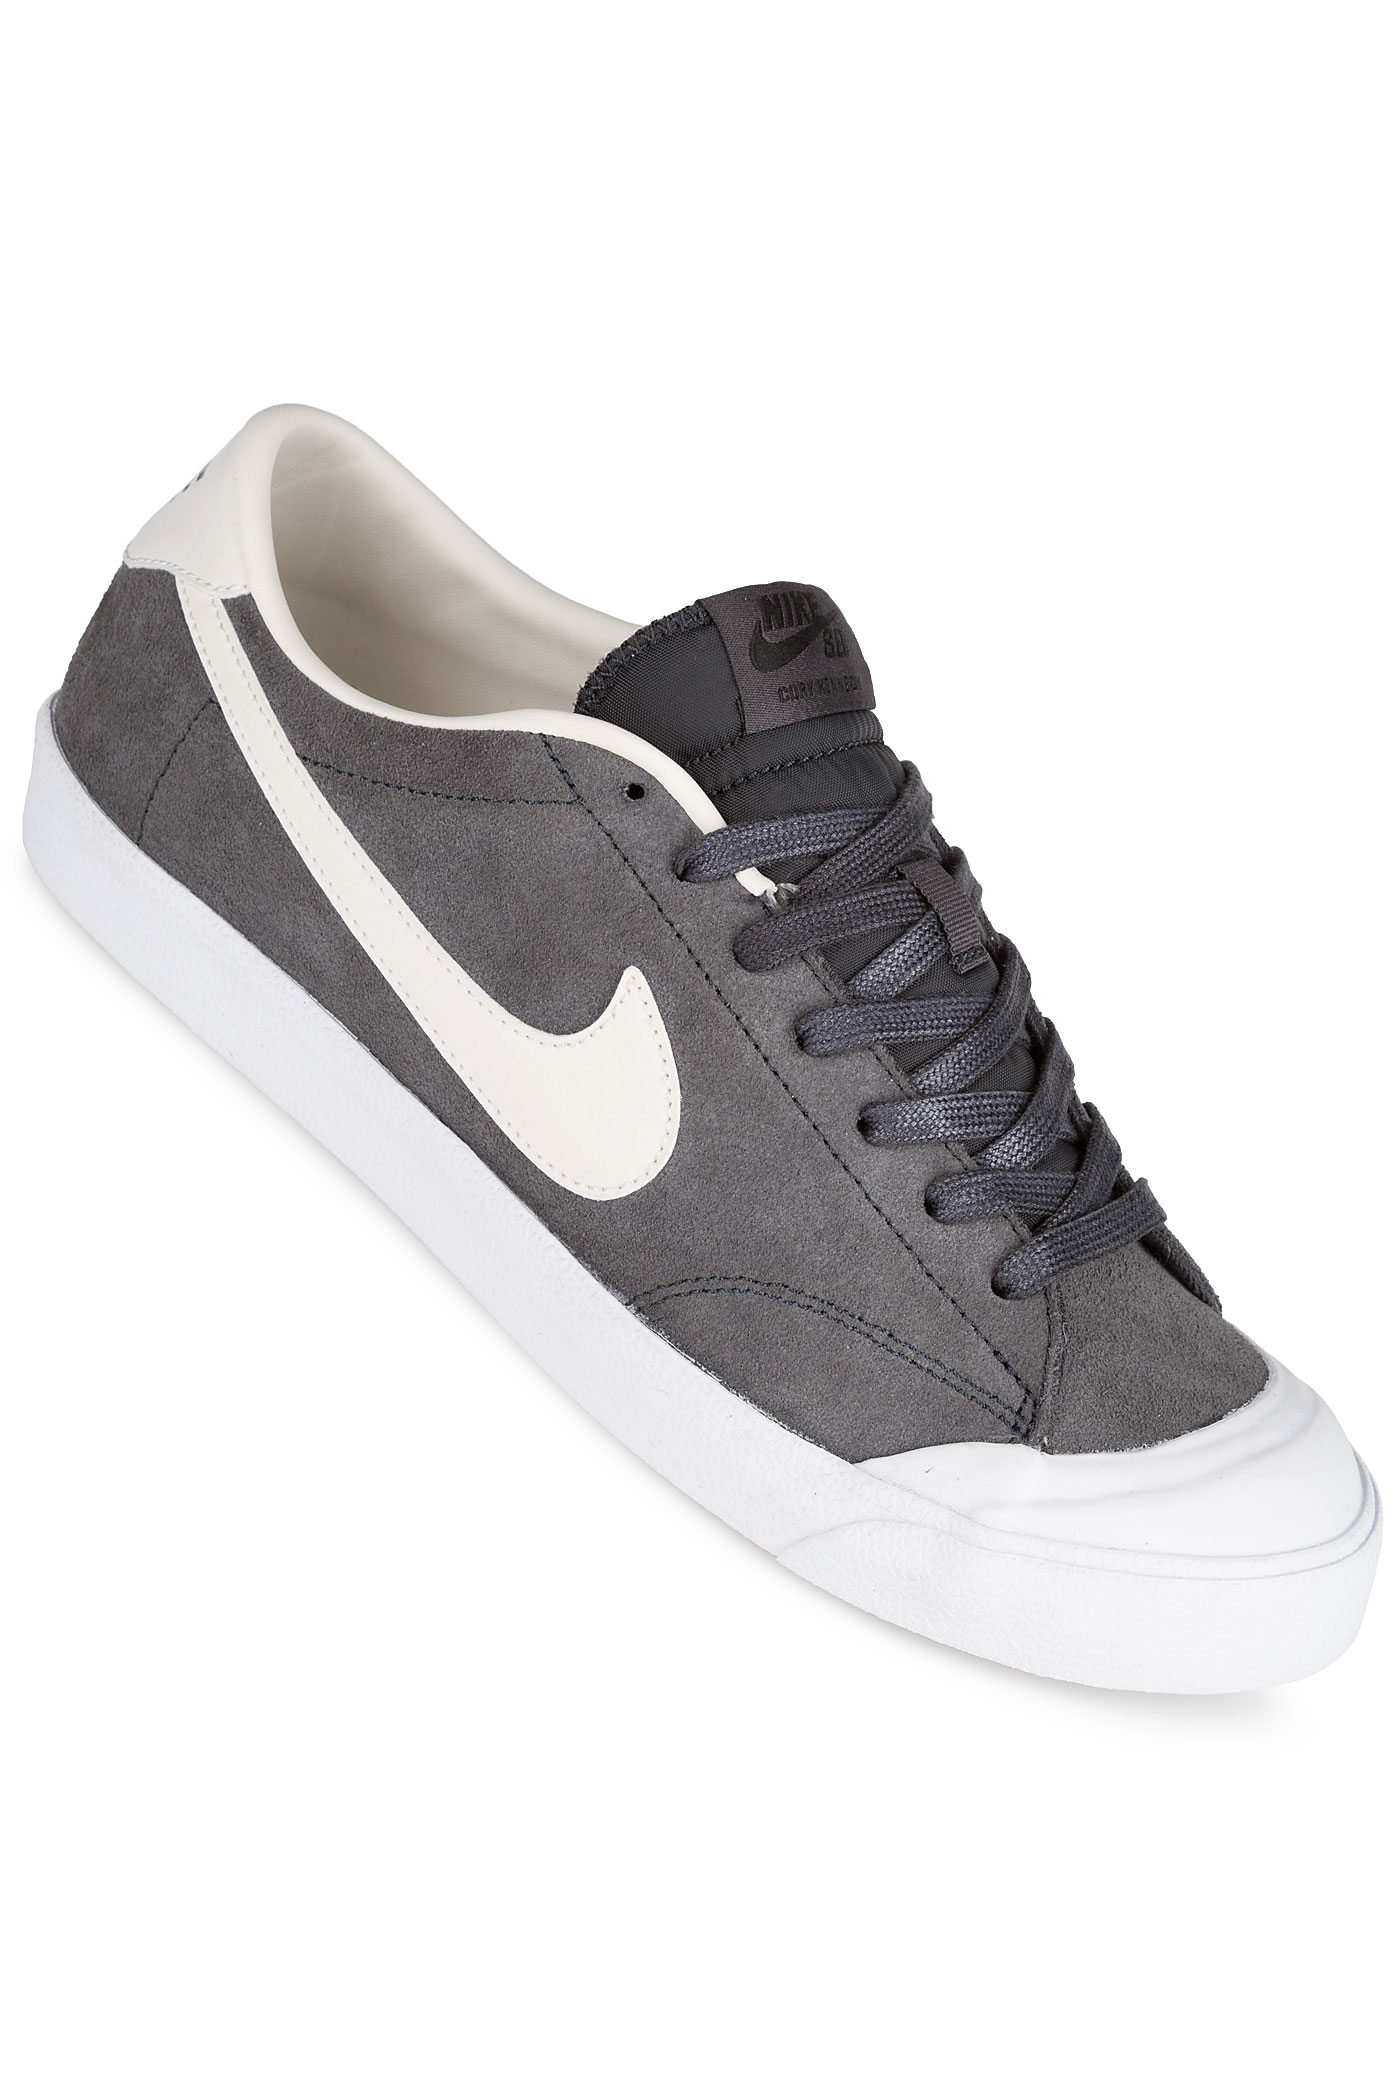 3d802b6ec0964 ... Nike SB Zoom All Court Cory Kennedy Shoes (anthracite phantom) .